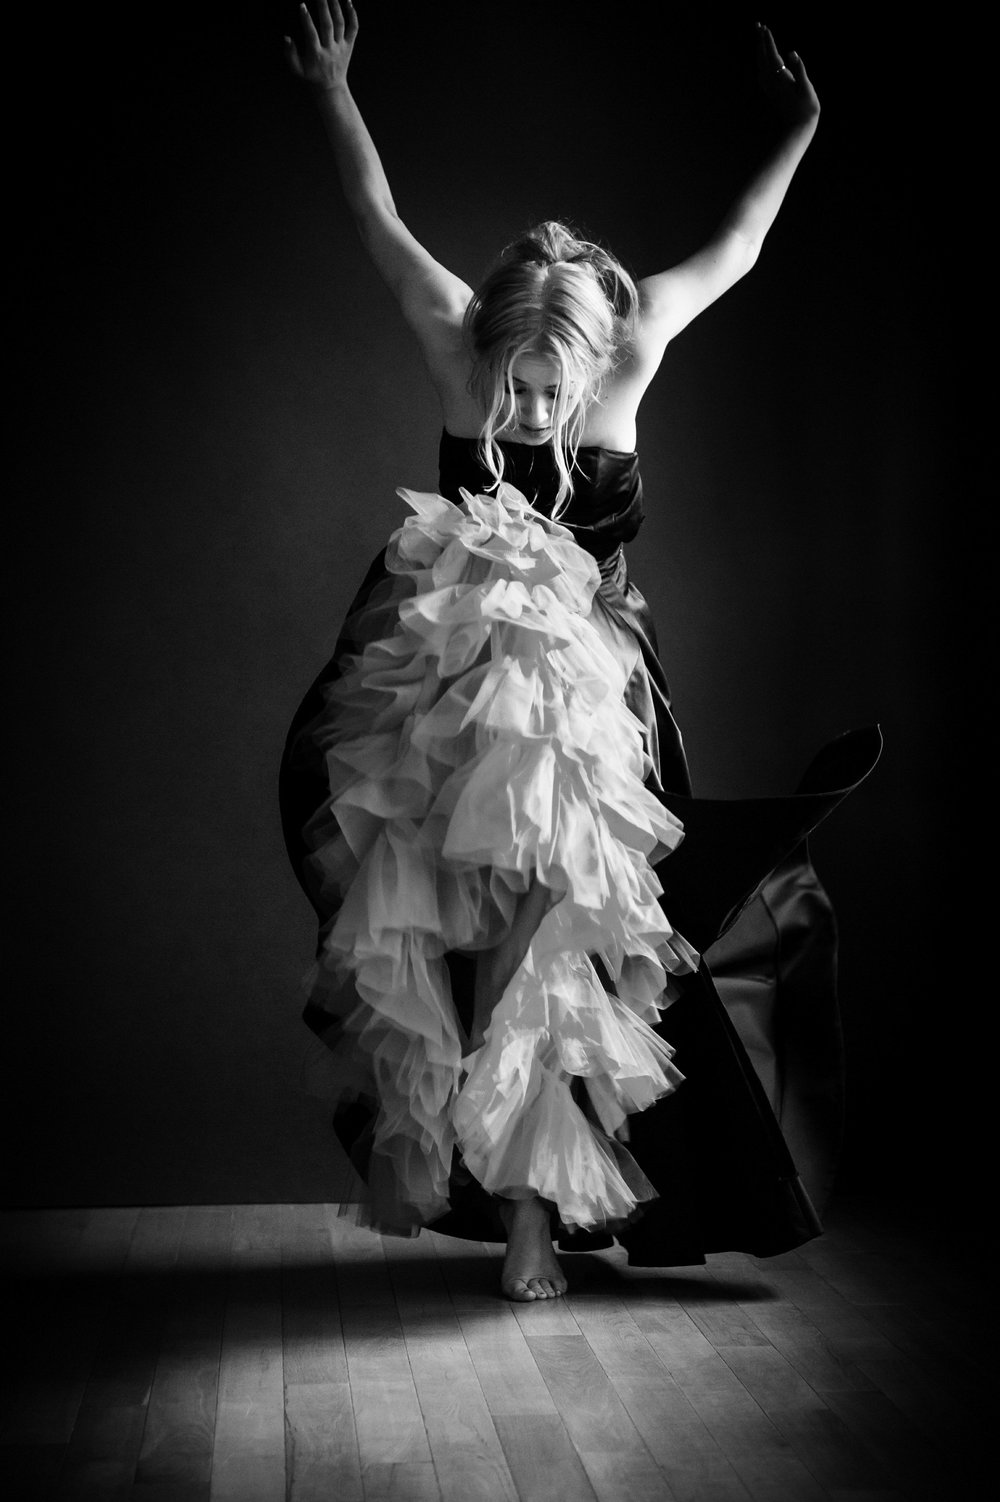 nEO_IMG_Xing Photography Soul of Dance - Haley-135-BW.jpg